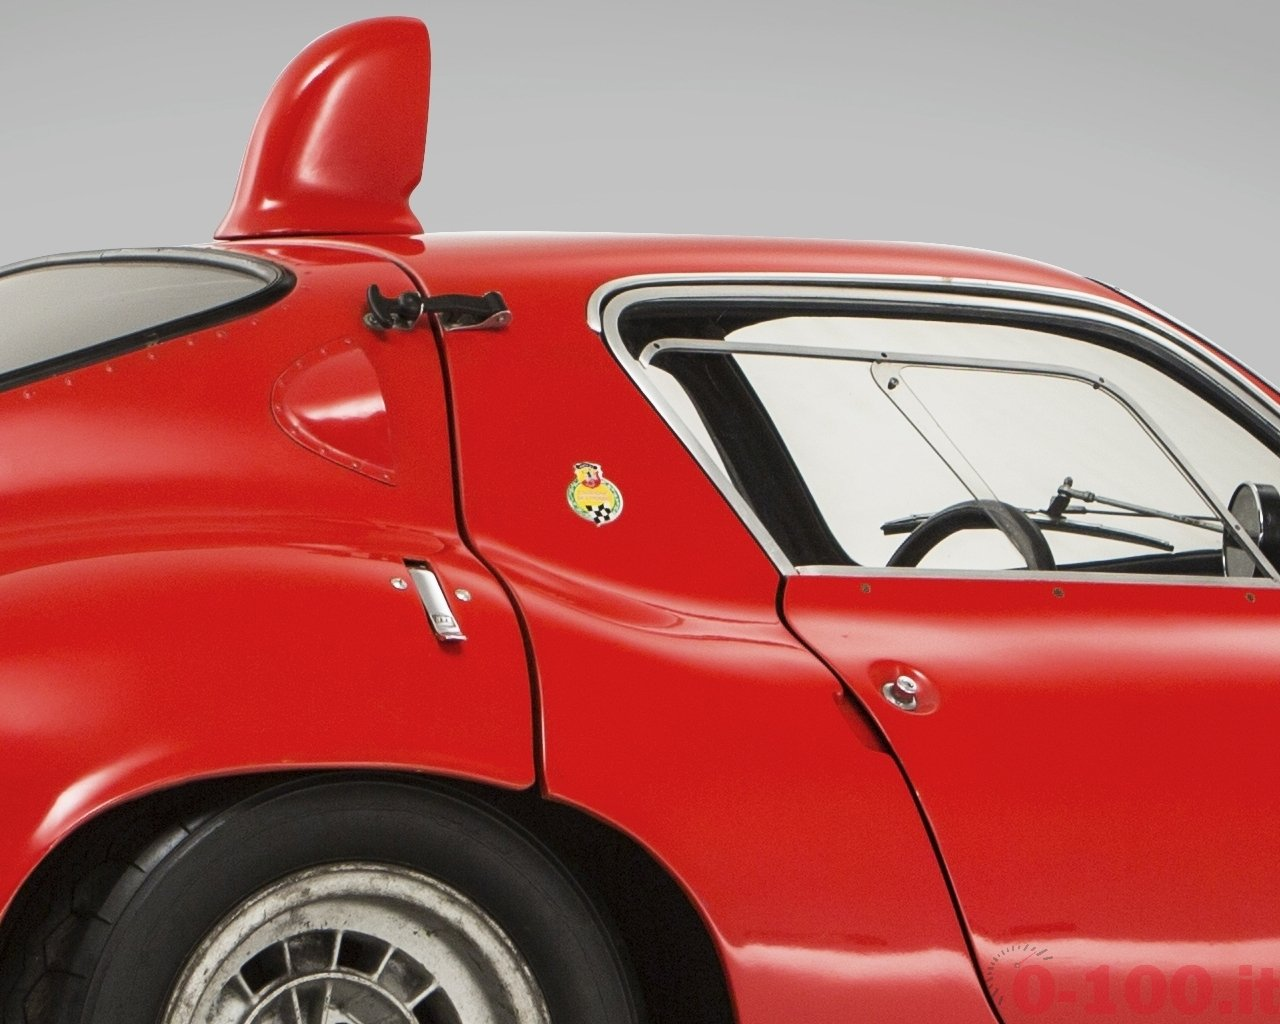 bonhams-at-goodwood-revival-2014-abarth-1300-ot-periscopio-coupe-1965_0-100_8